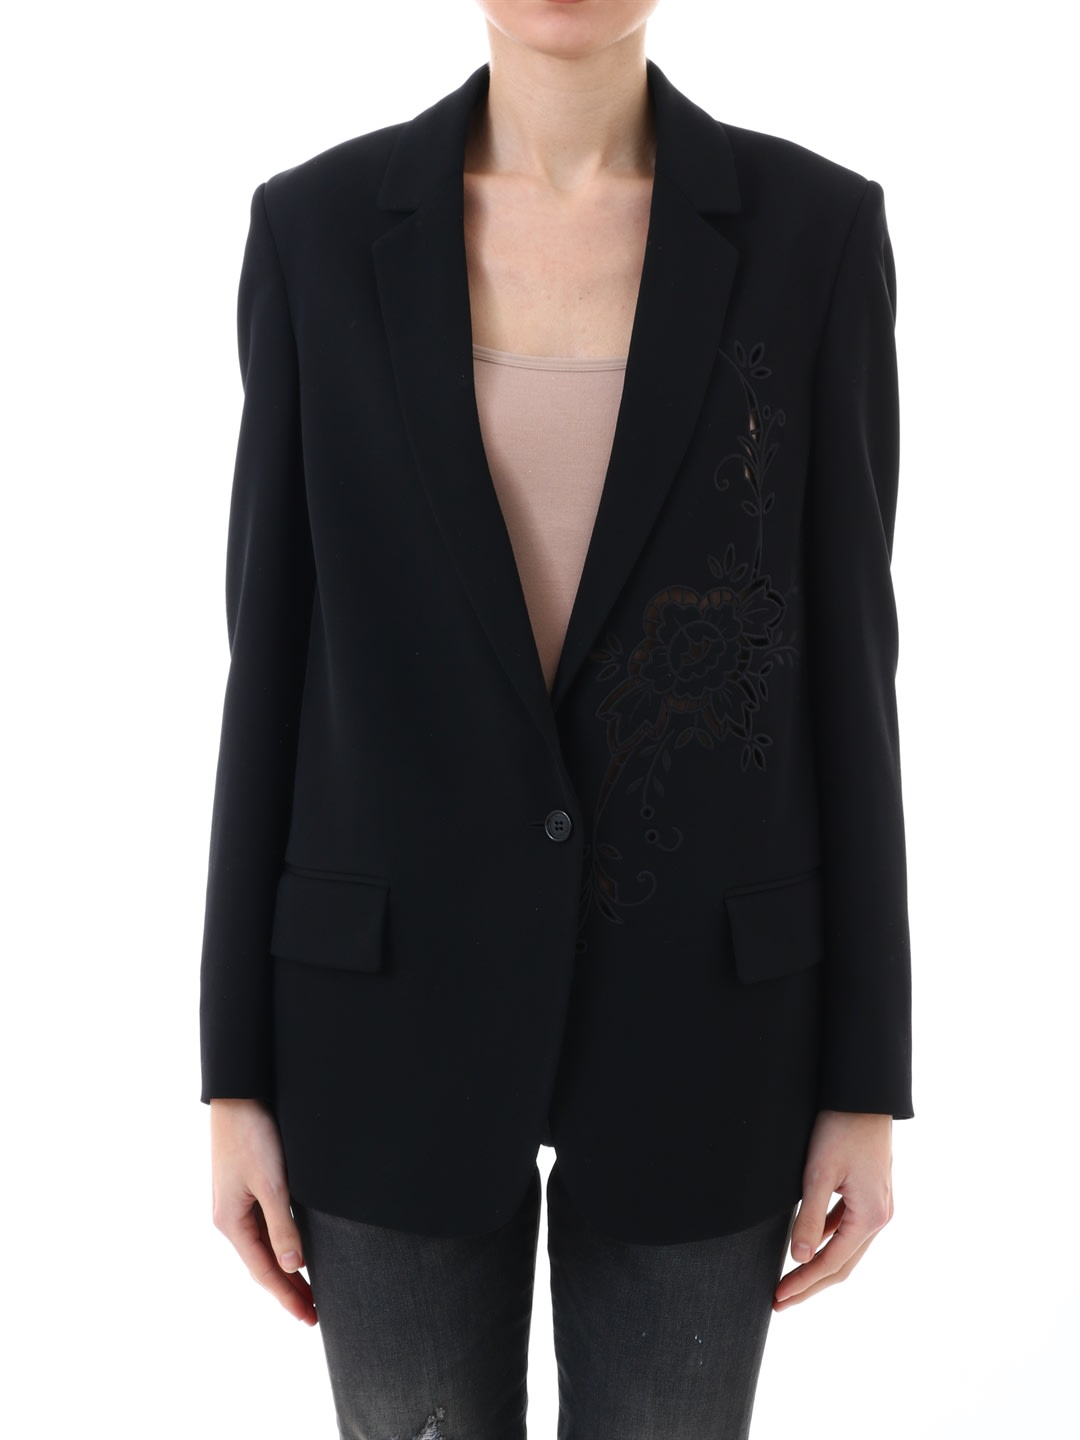 Stella McCartney Jacket Macramè Black